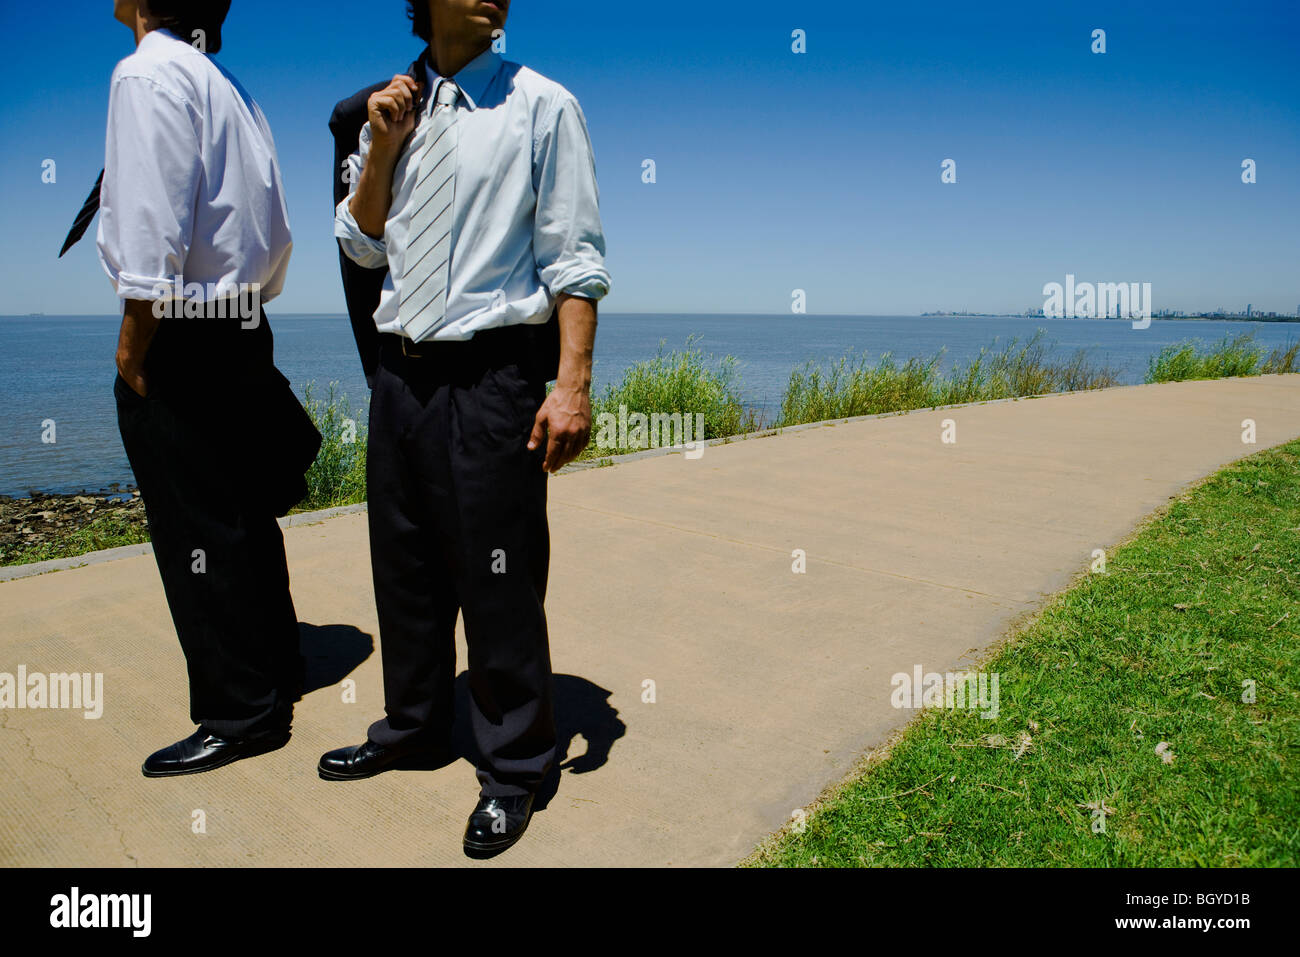 Two young businessmen standing on path, sea in background, cropped Stock Photo